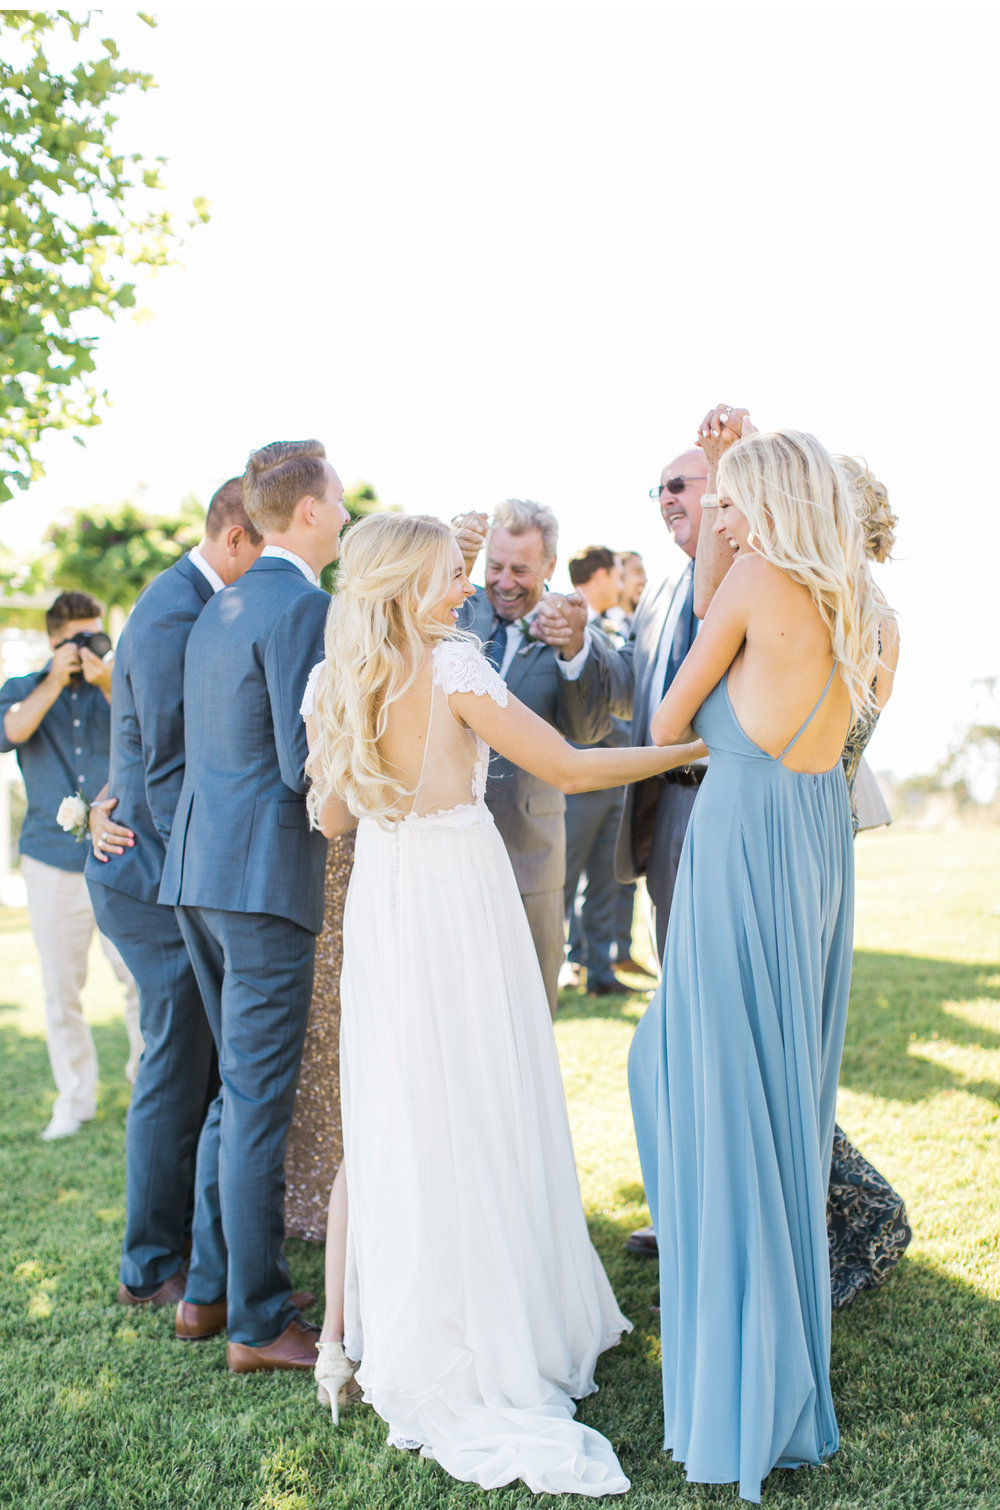 Paso-Robles-Style-Me-Pretty-The-Knot-Wedding-Natalie-Schutt-Photography's-Wedding_12.jpg